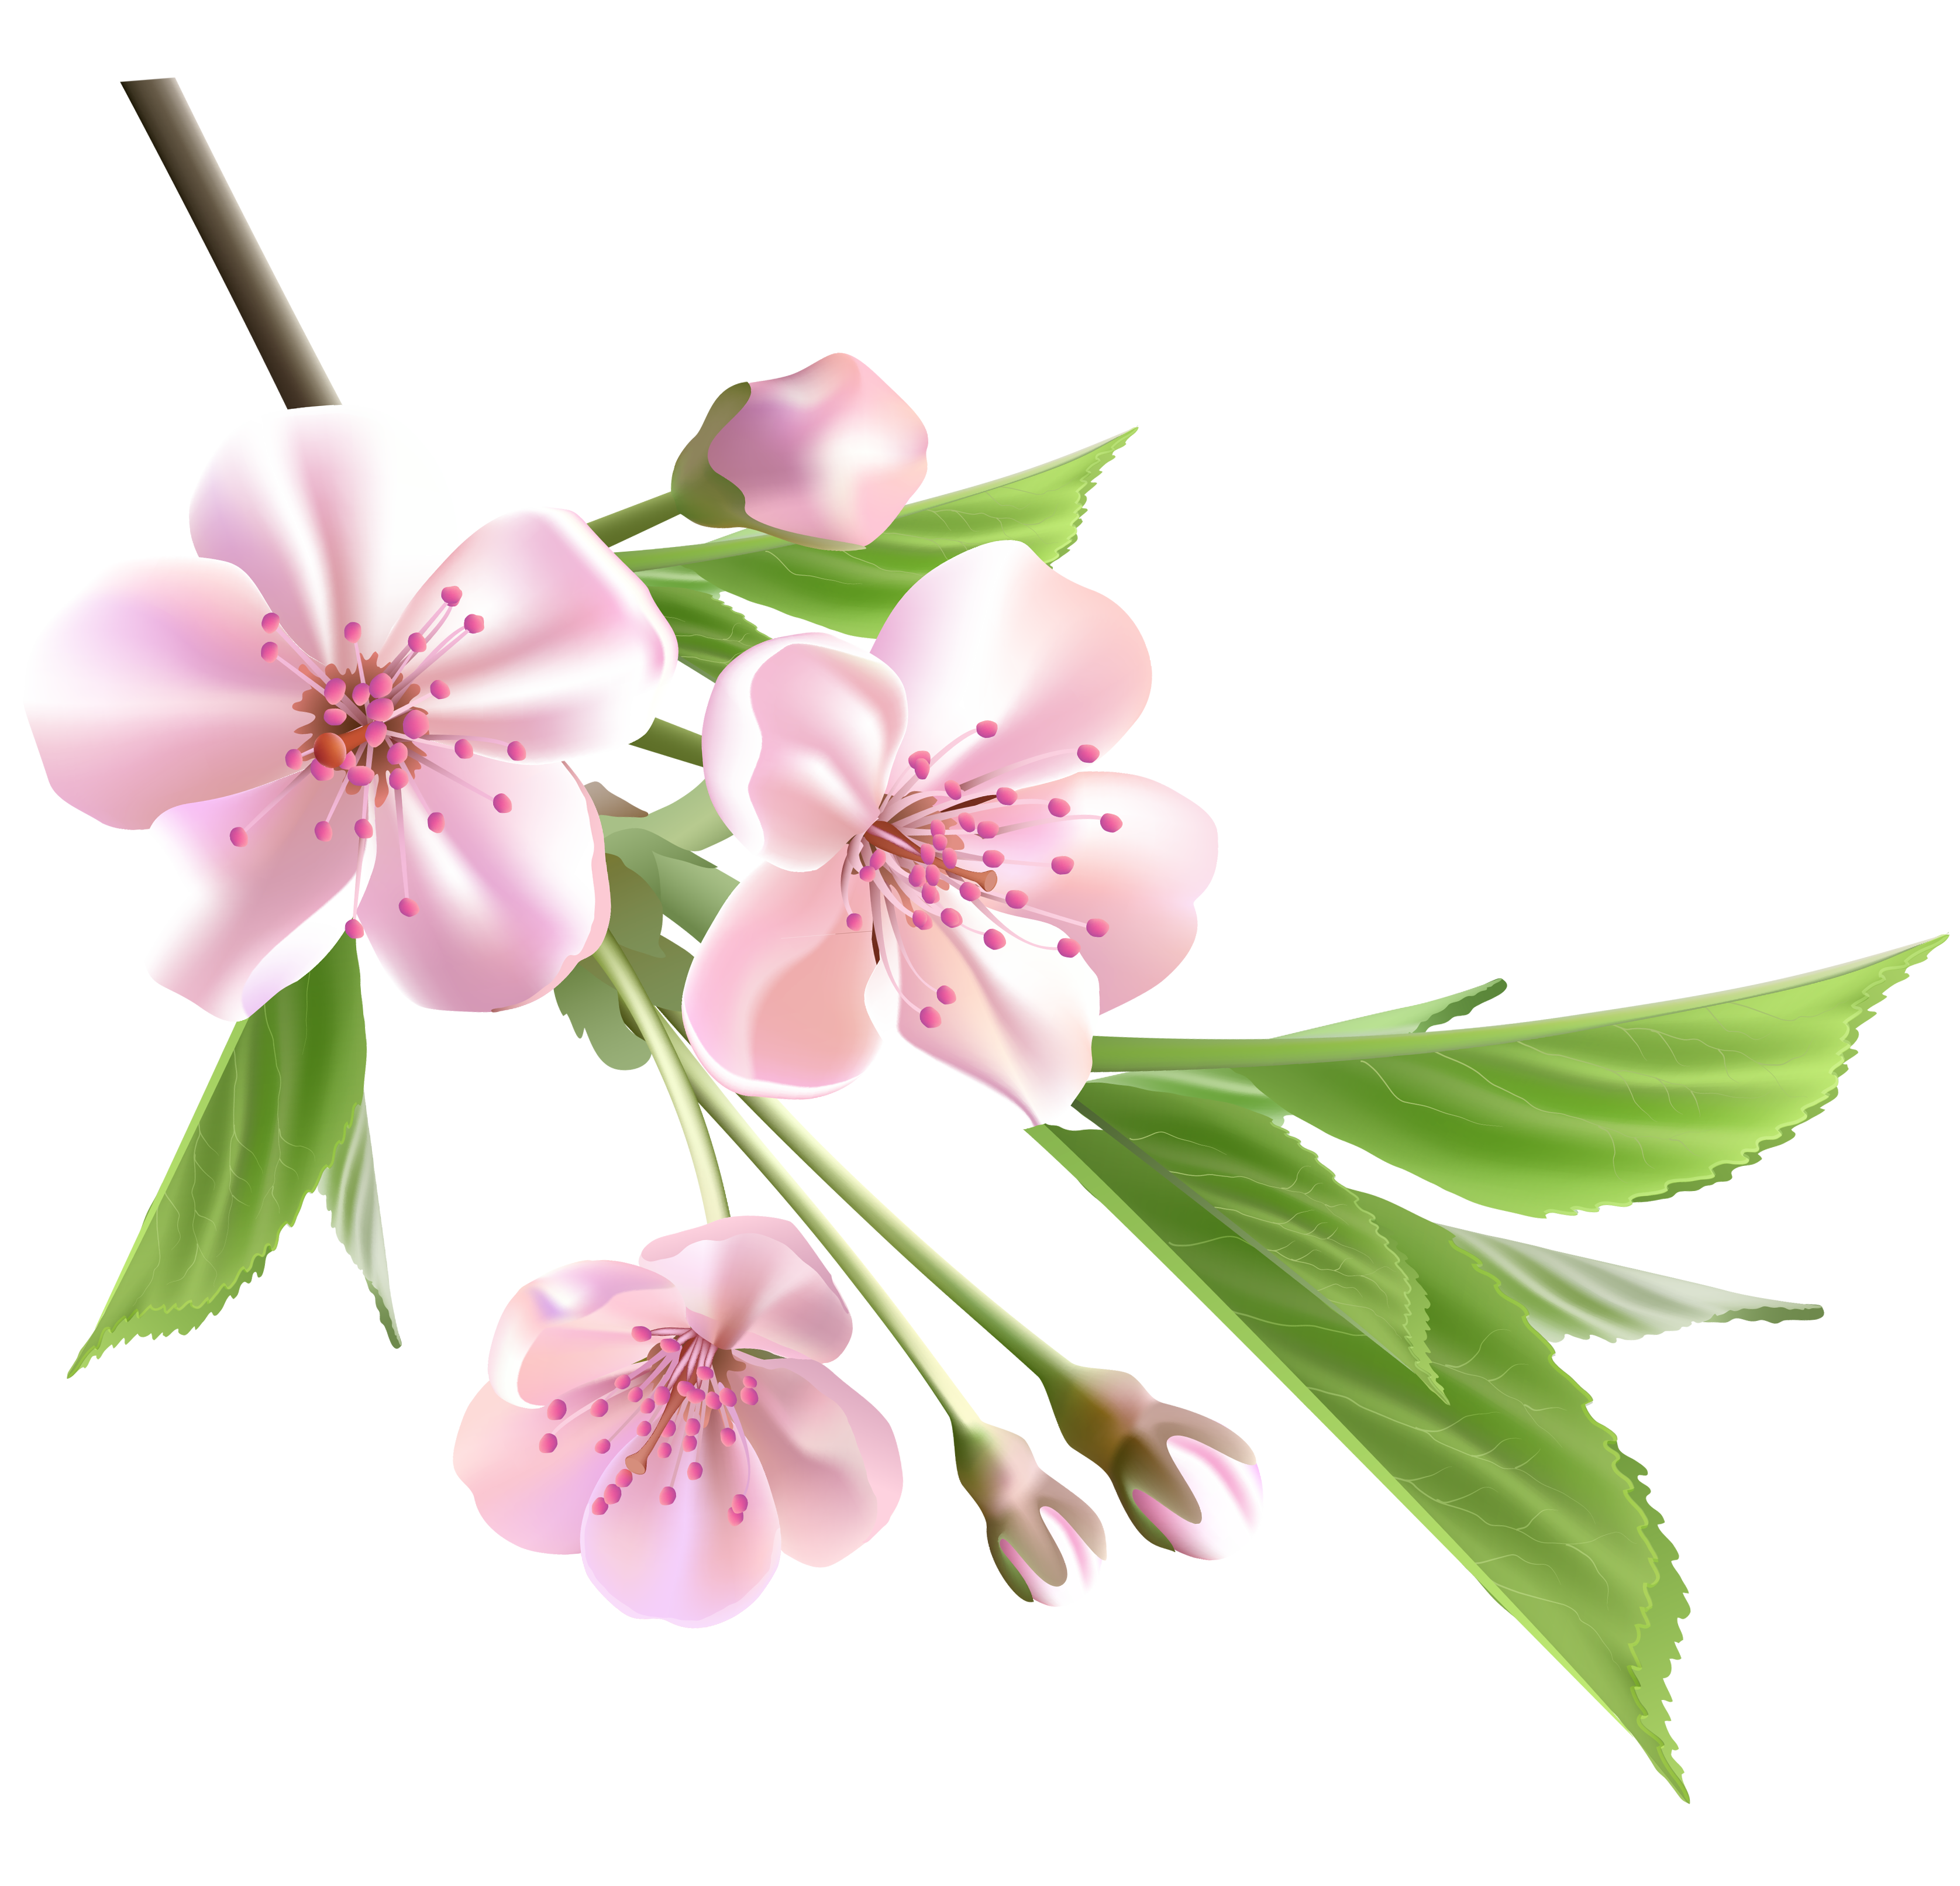 Transparent spring blossom. Branch with pink tree